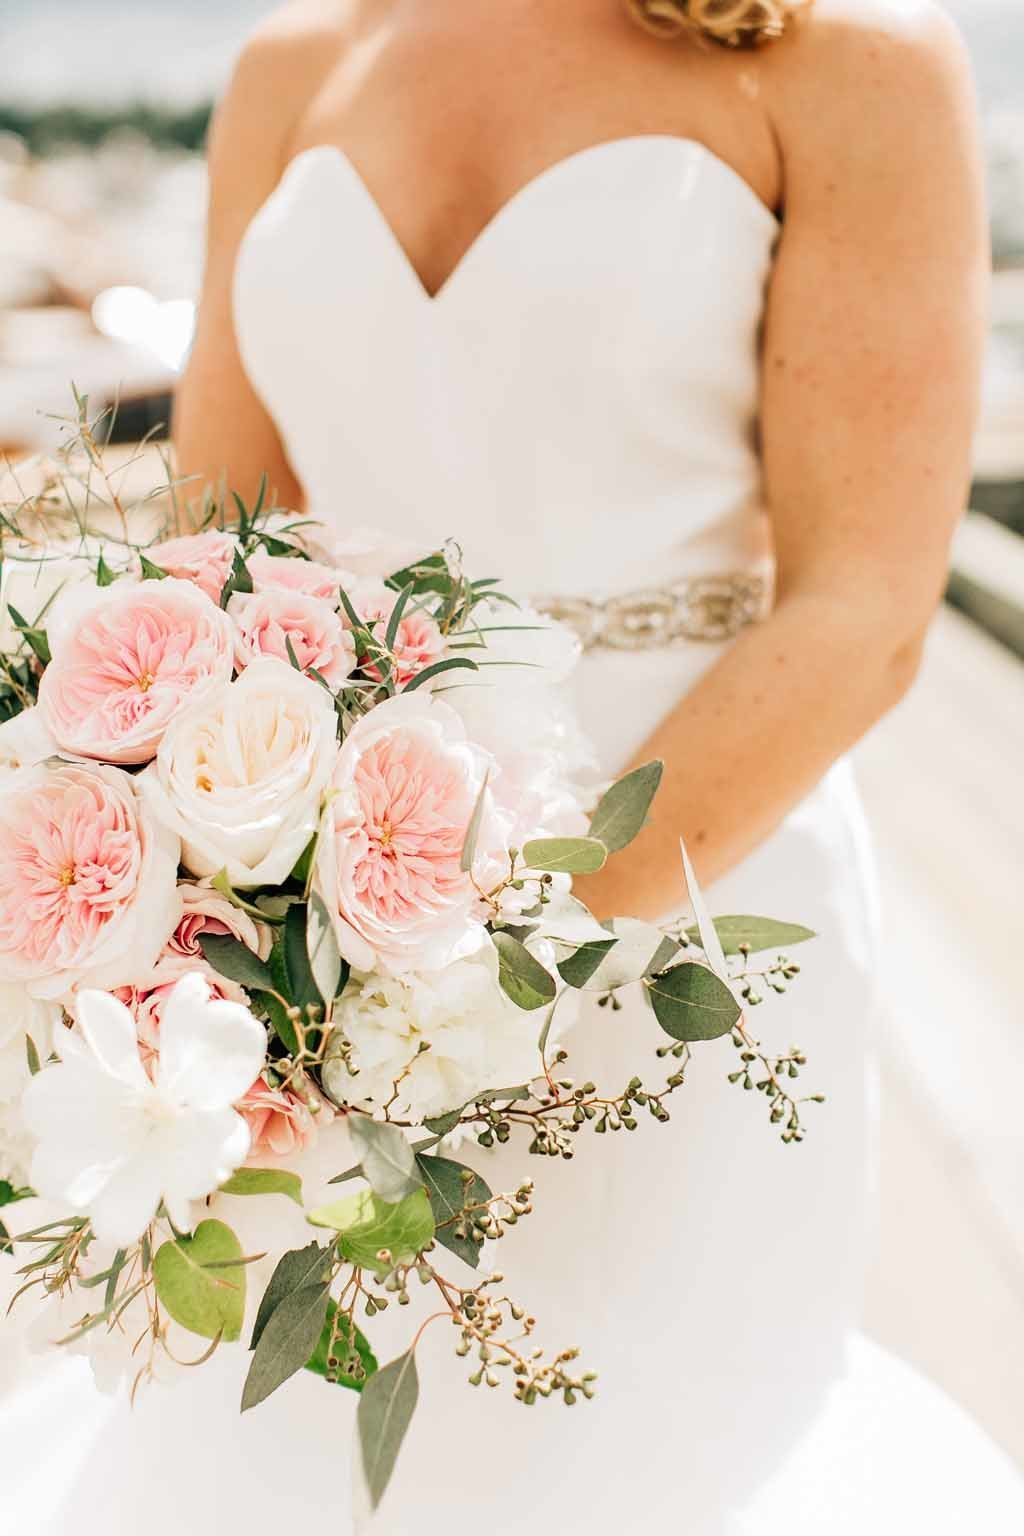 Stunning bridal bouquet designed by Flora Nova Design for this Seattle summer tent wedding.